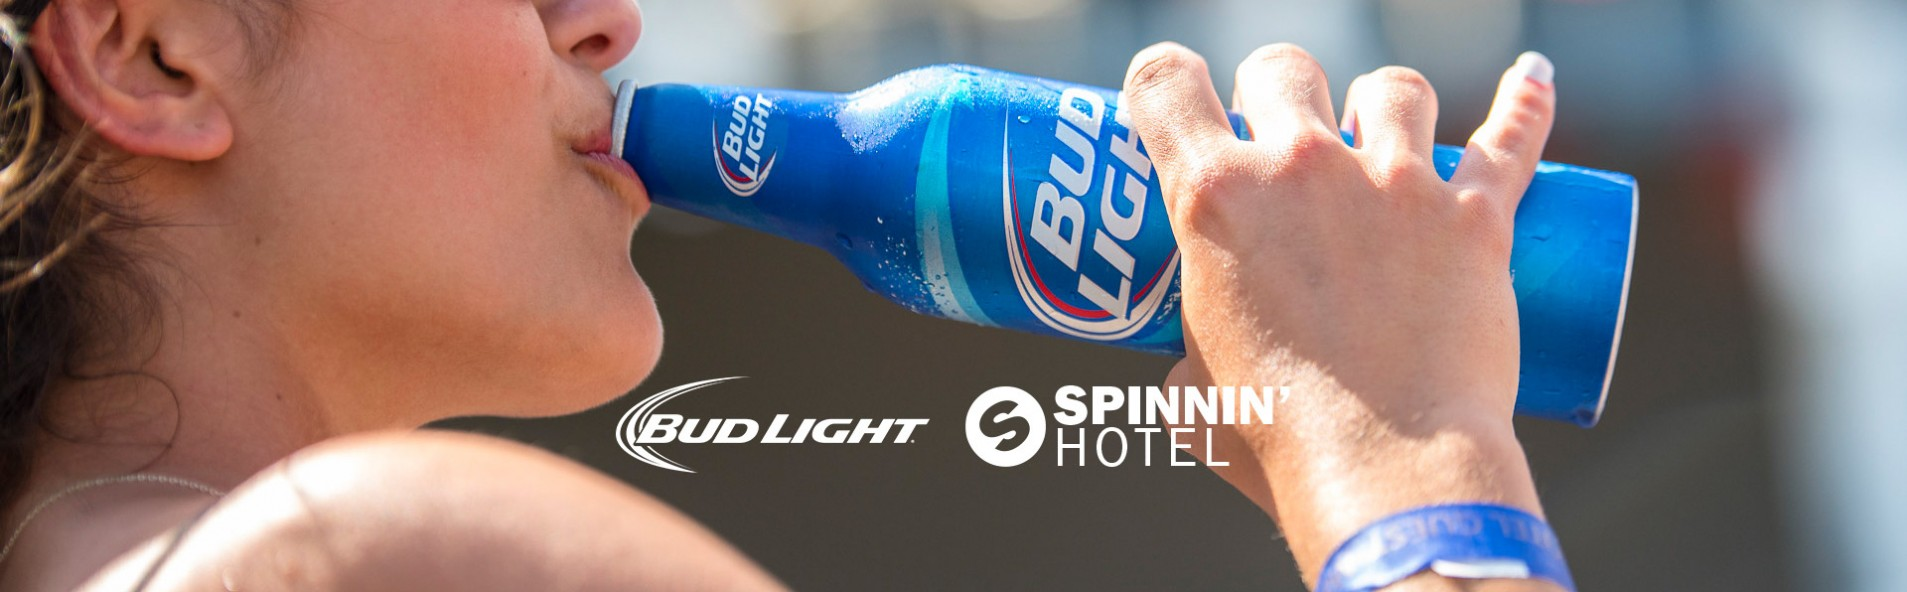 Spinnin' Hotel & Bud Light